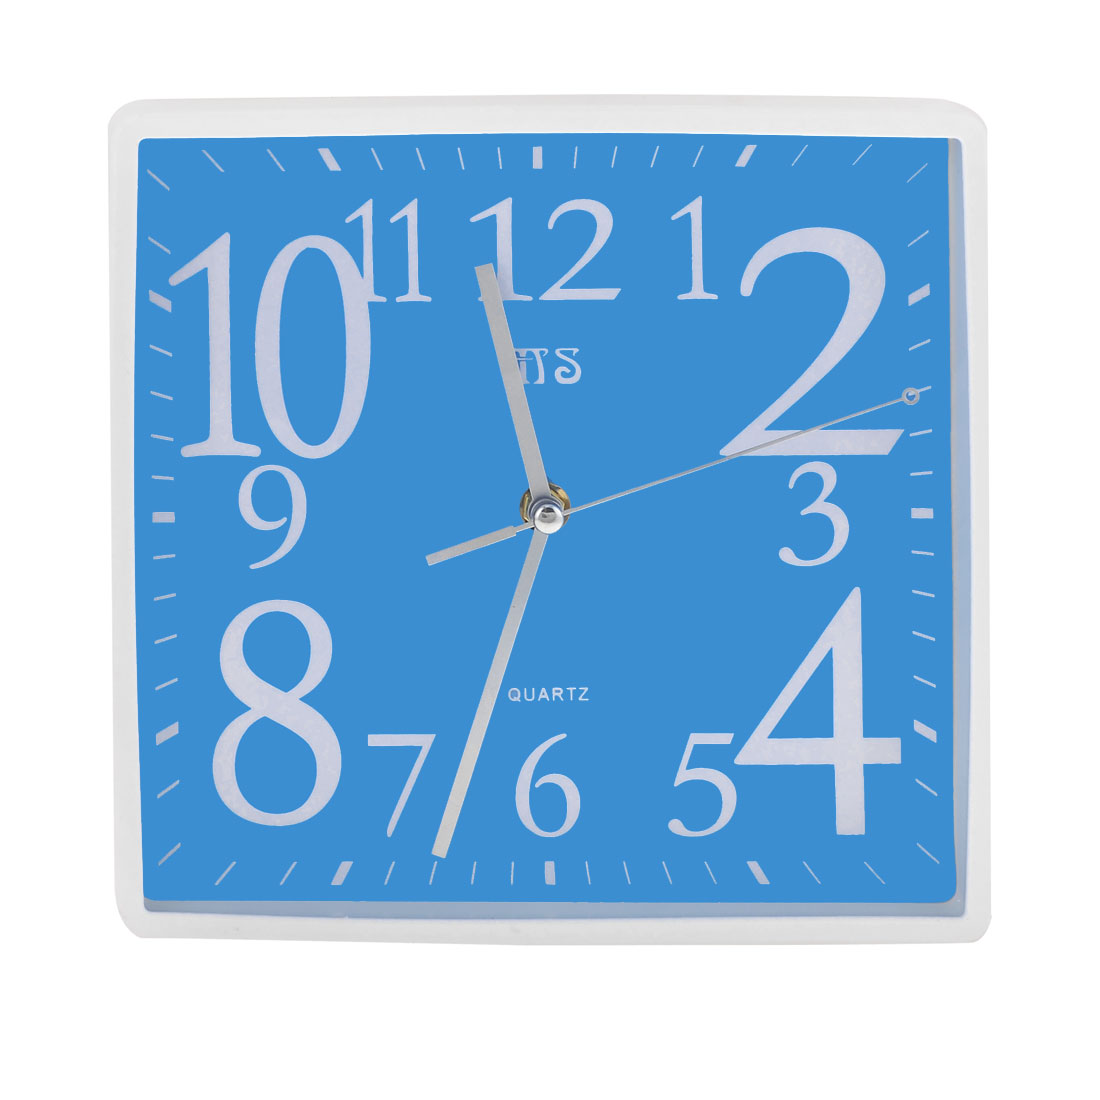 Office Blue White Square Shaped Shell Wall Mounted Alarm Clock